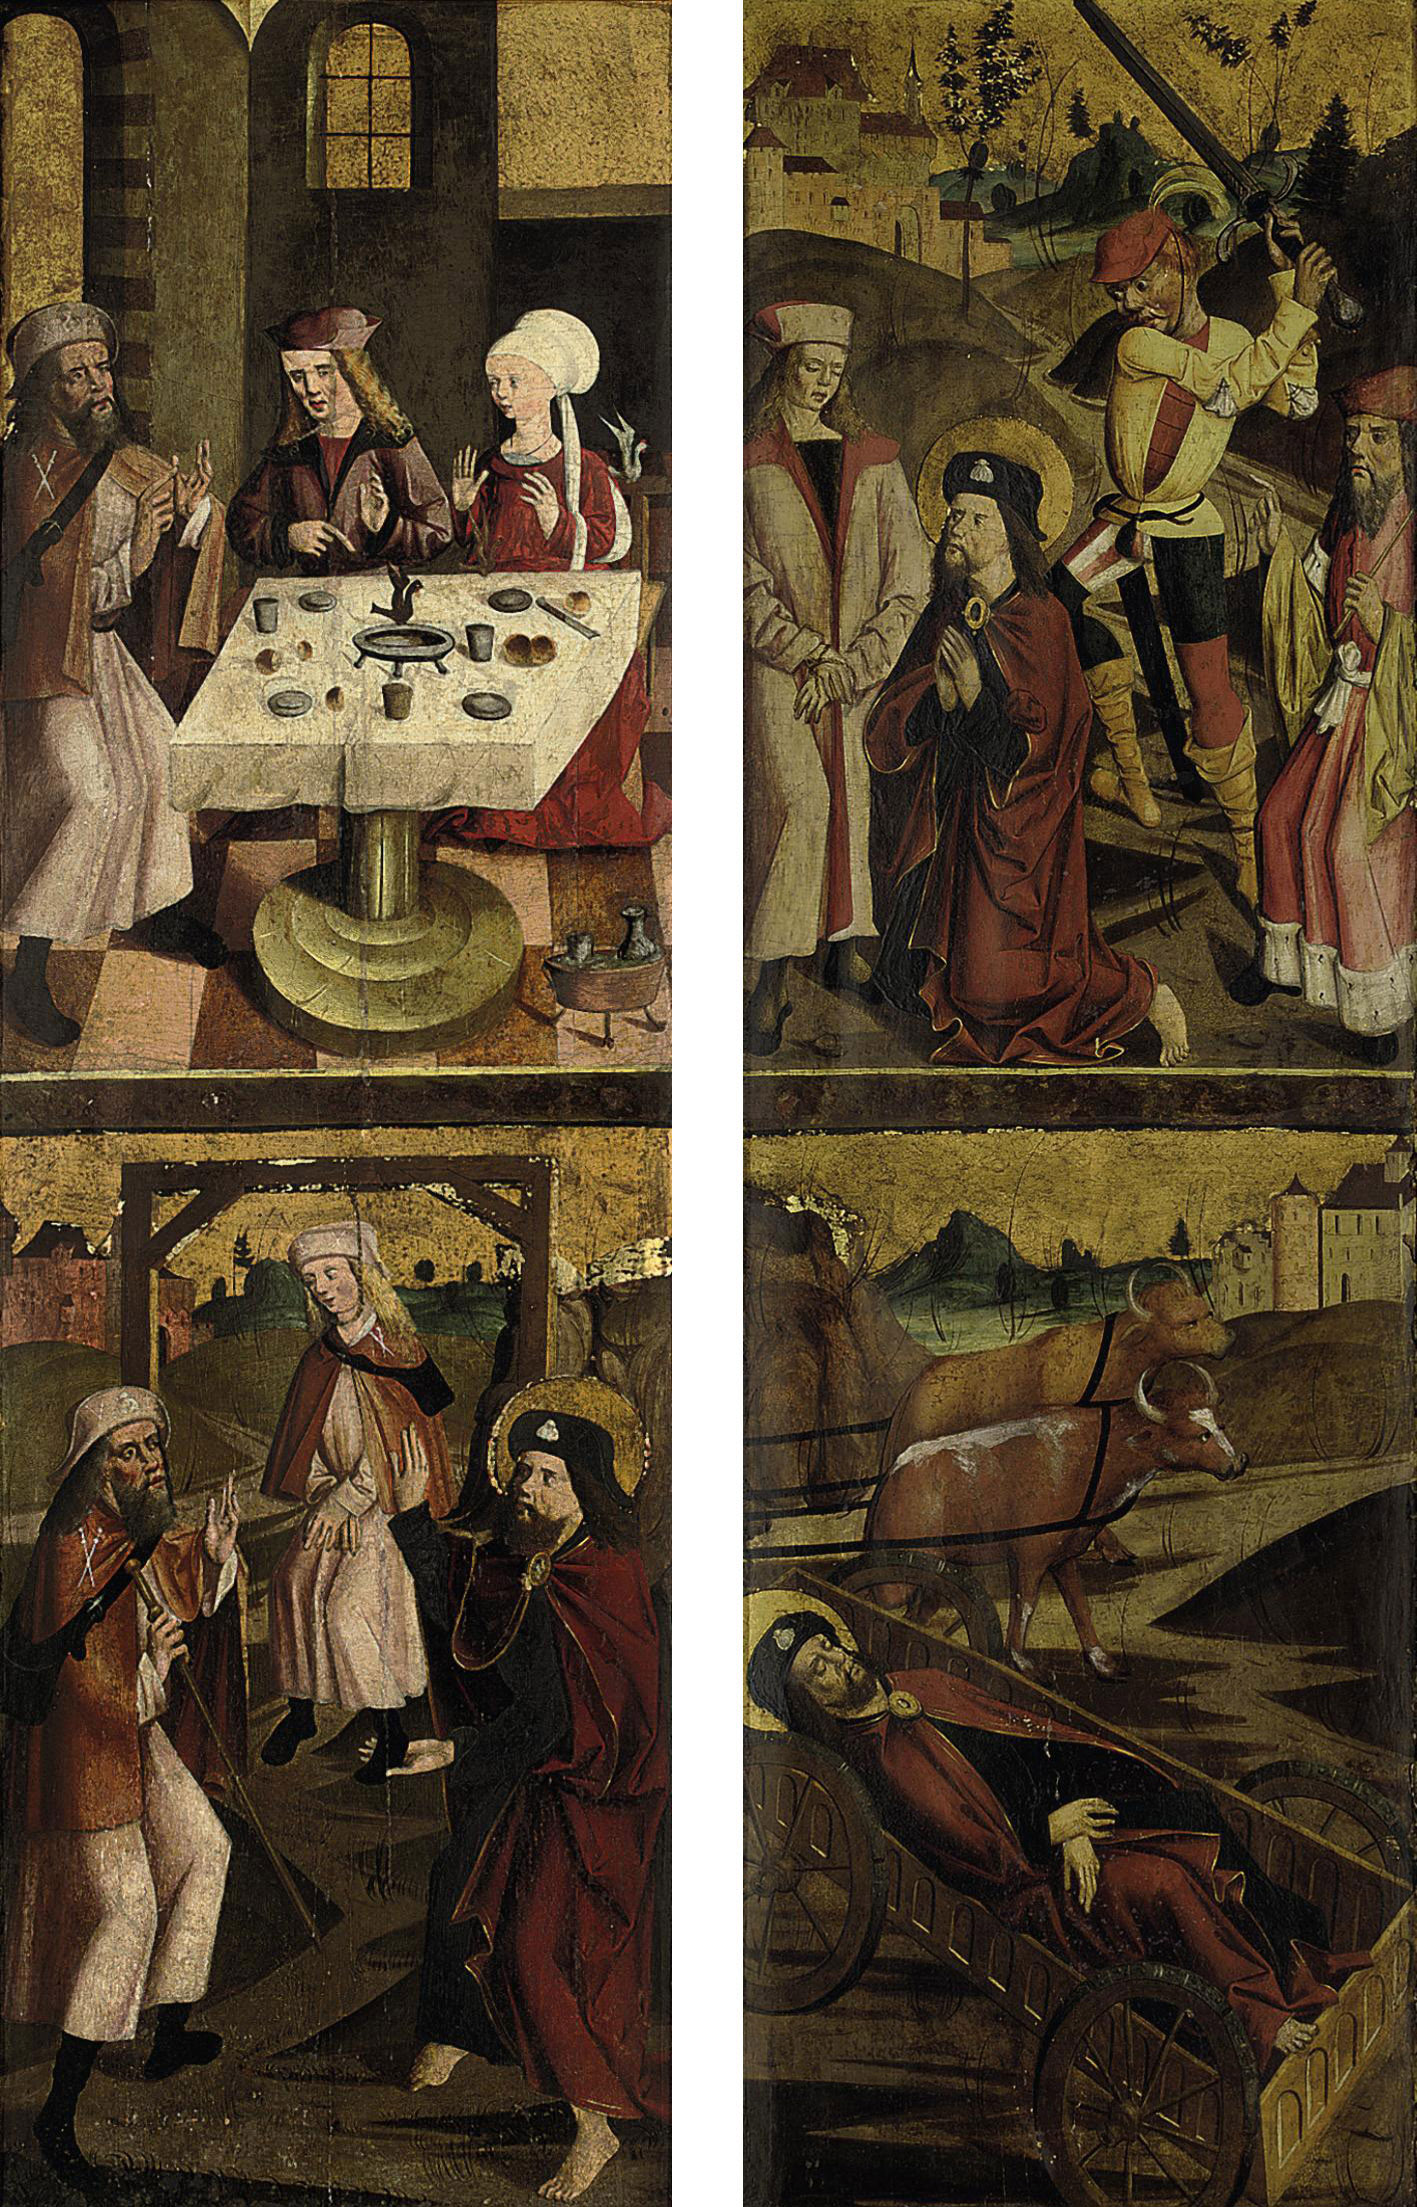 The wings of a triptych: scenes from the life of Saint James the Great